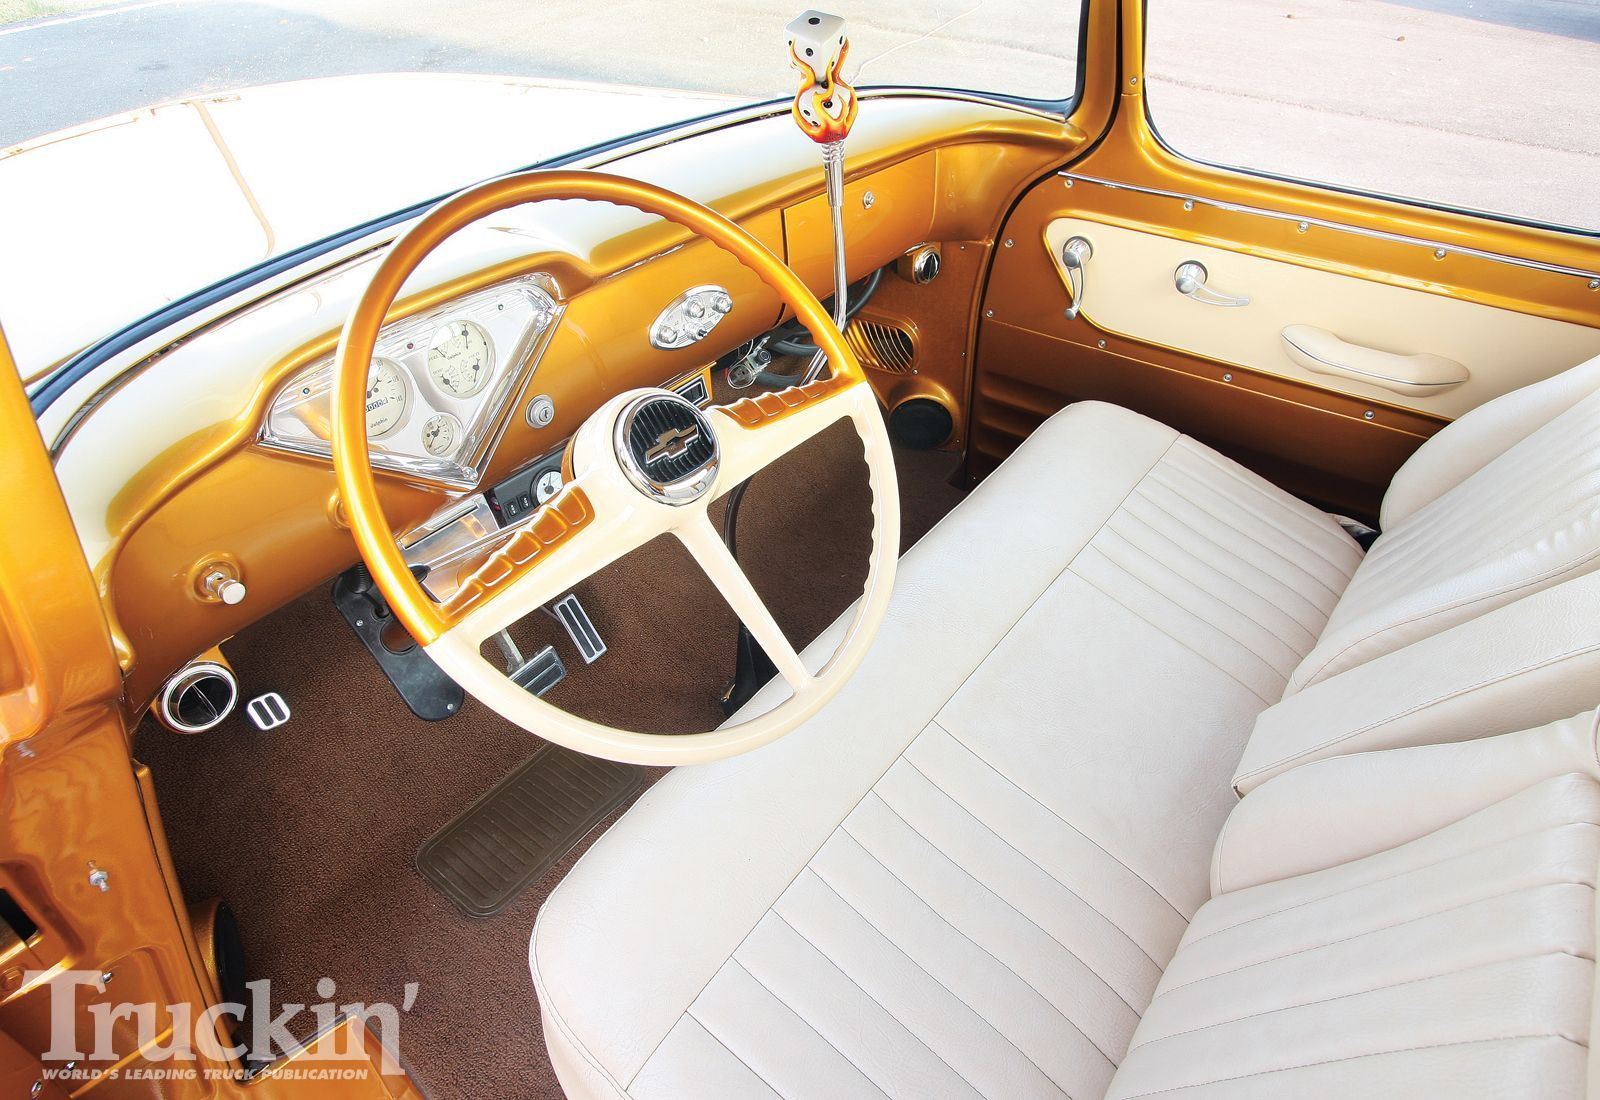 1956 cadillac interior related keywords amp suggestions - 1955 Chevy Pickup Interior